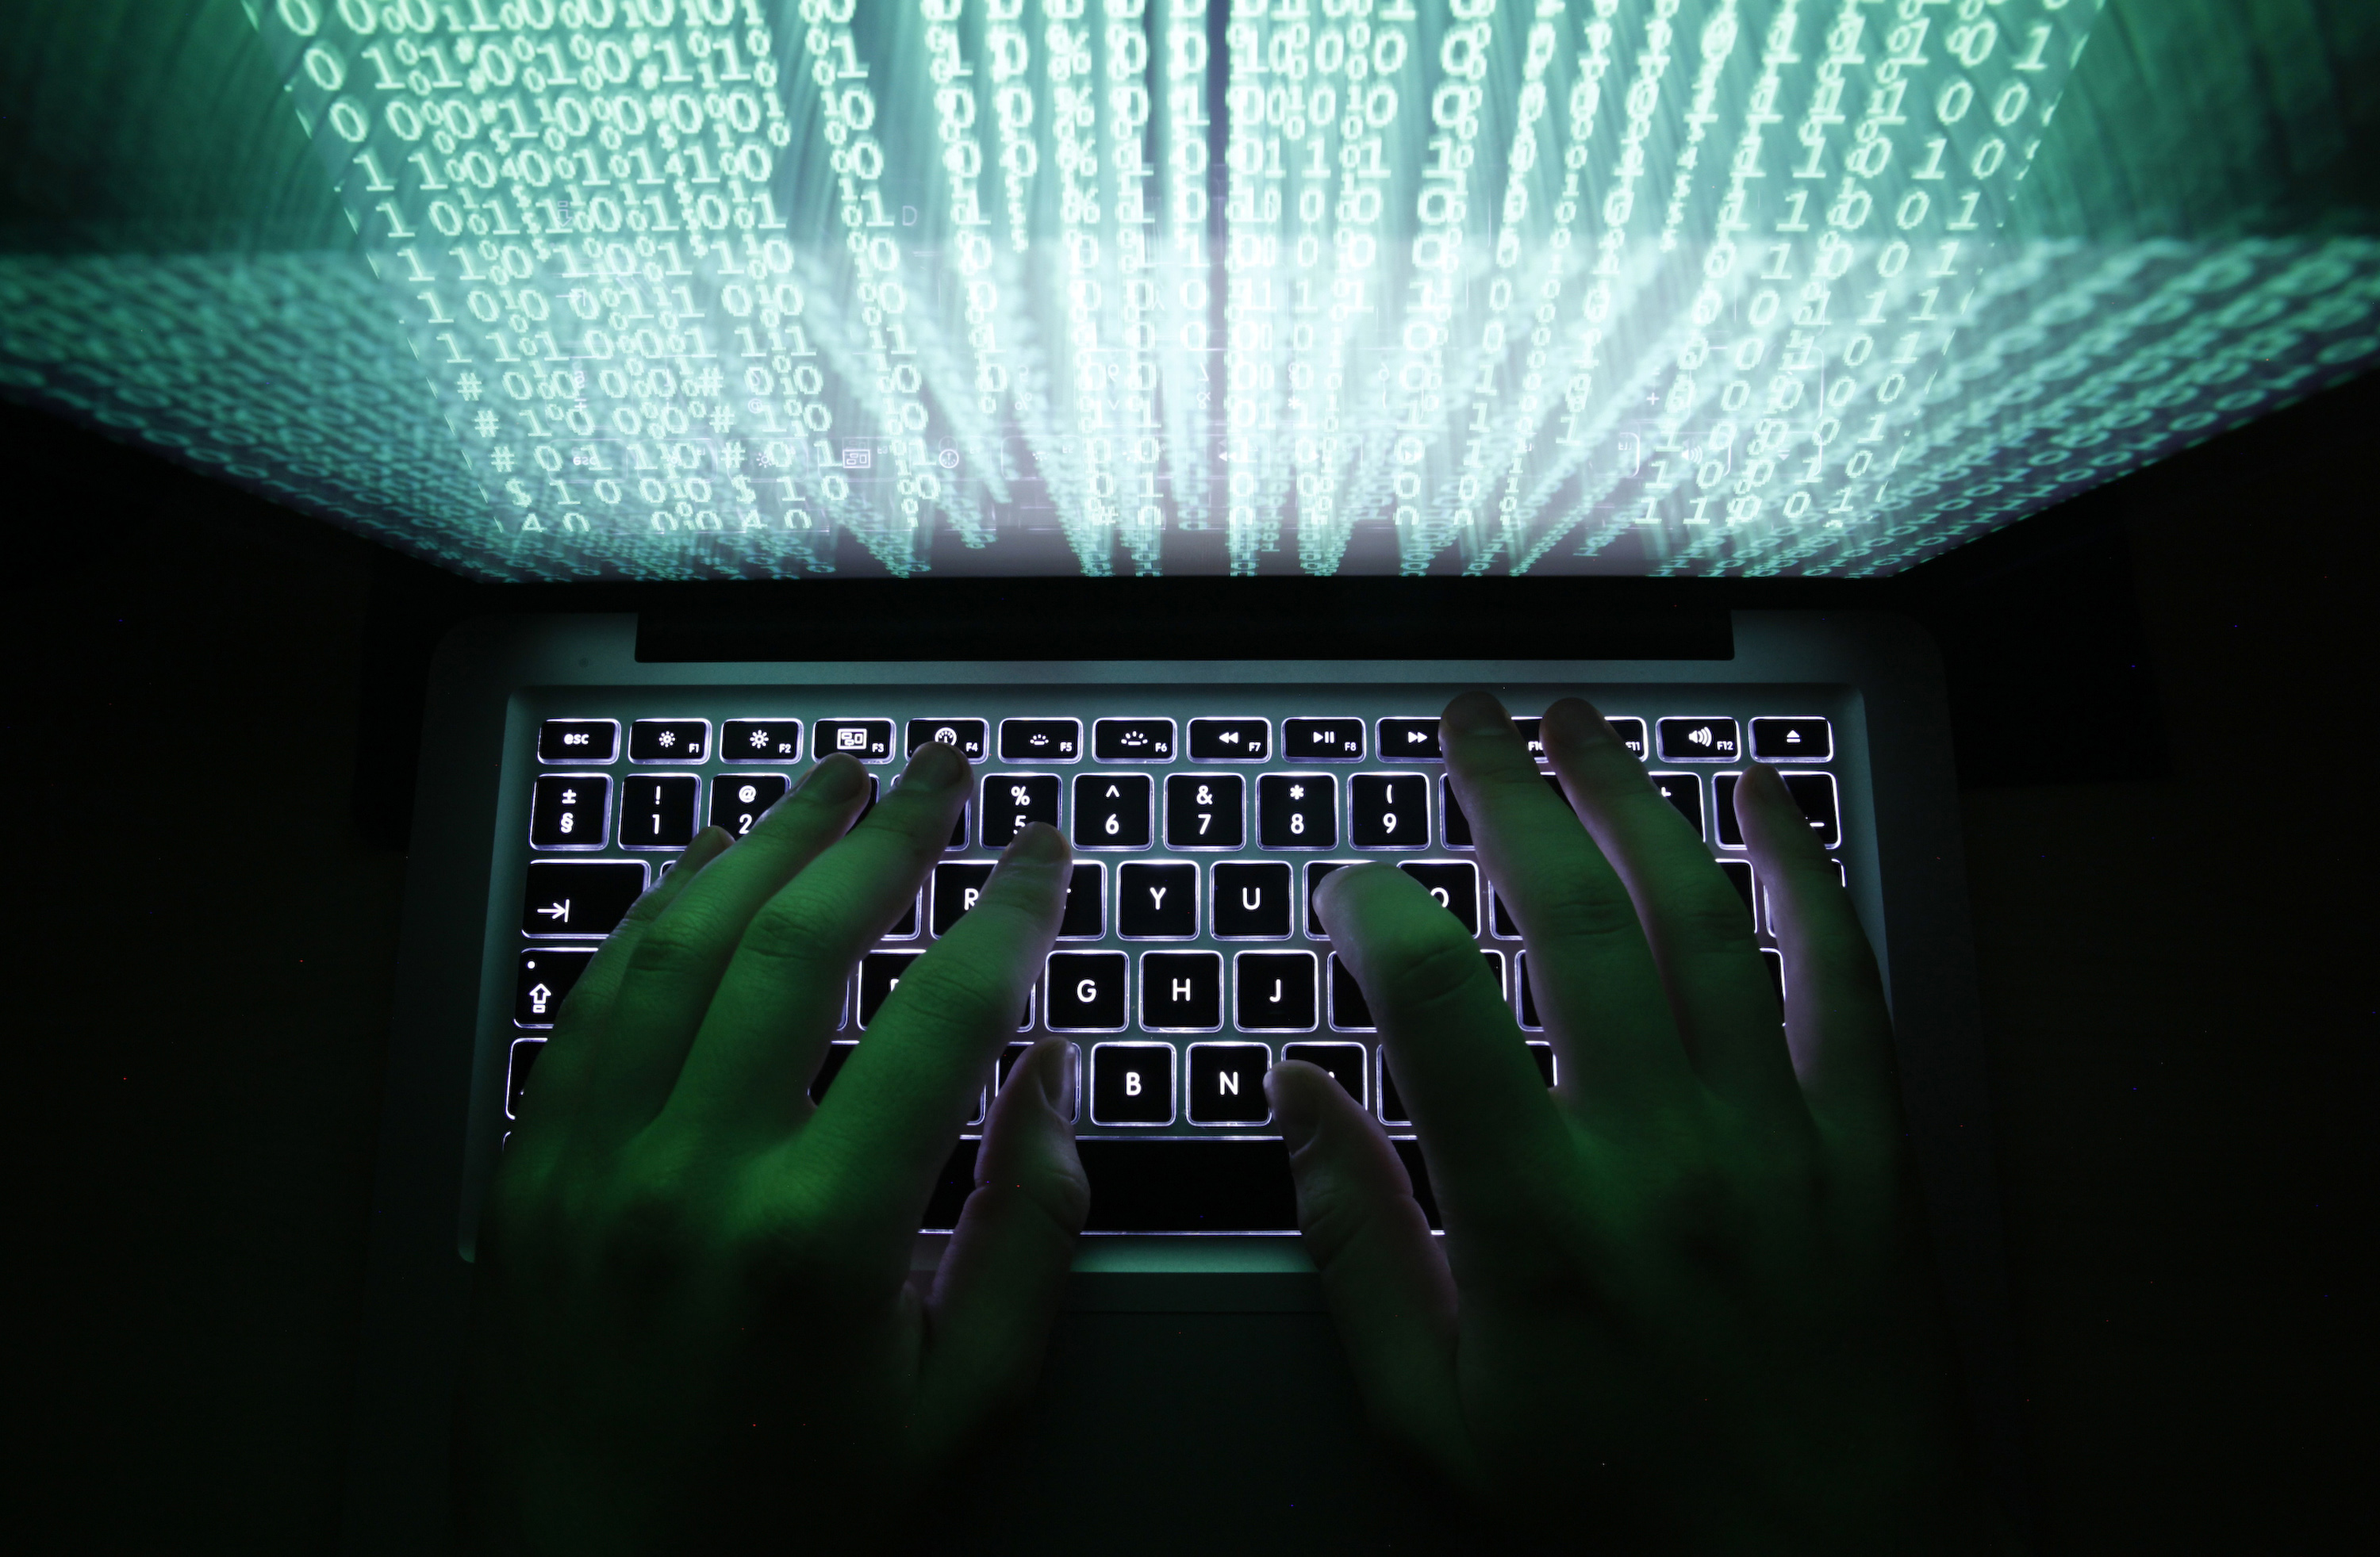 A man types on a computer keyboard in a February 28, 2013 illustration photo. REUTERS/Kacper Pempel